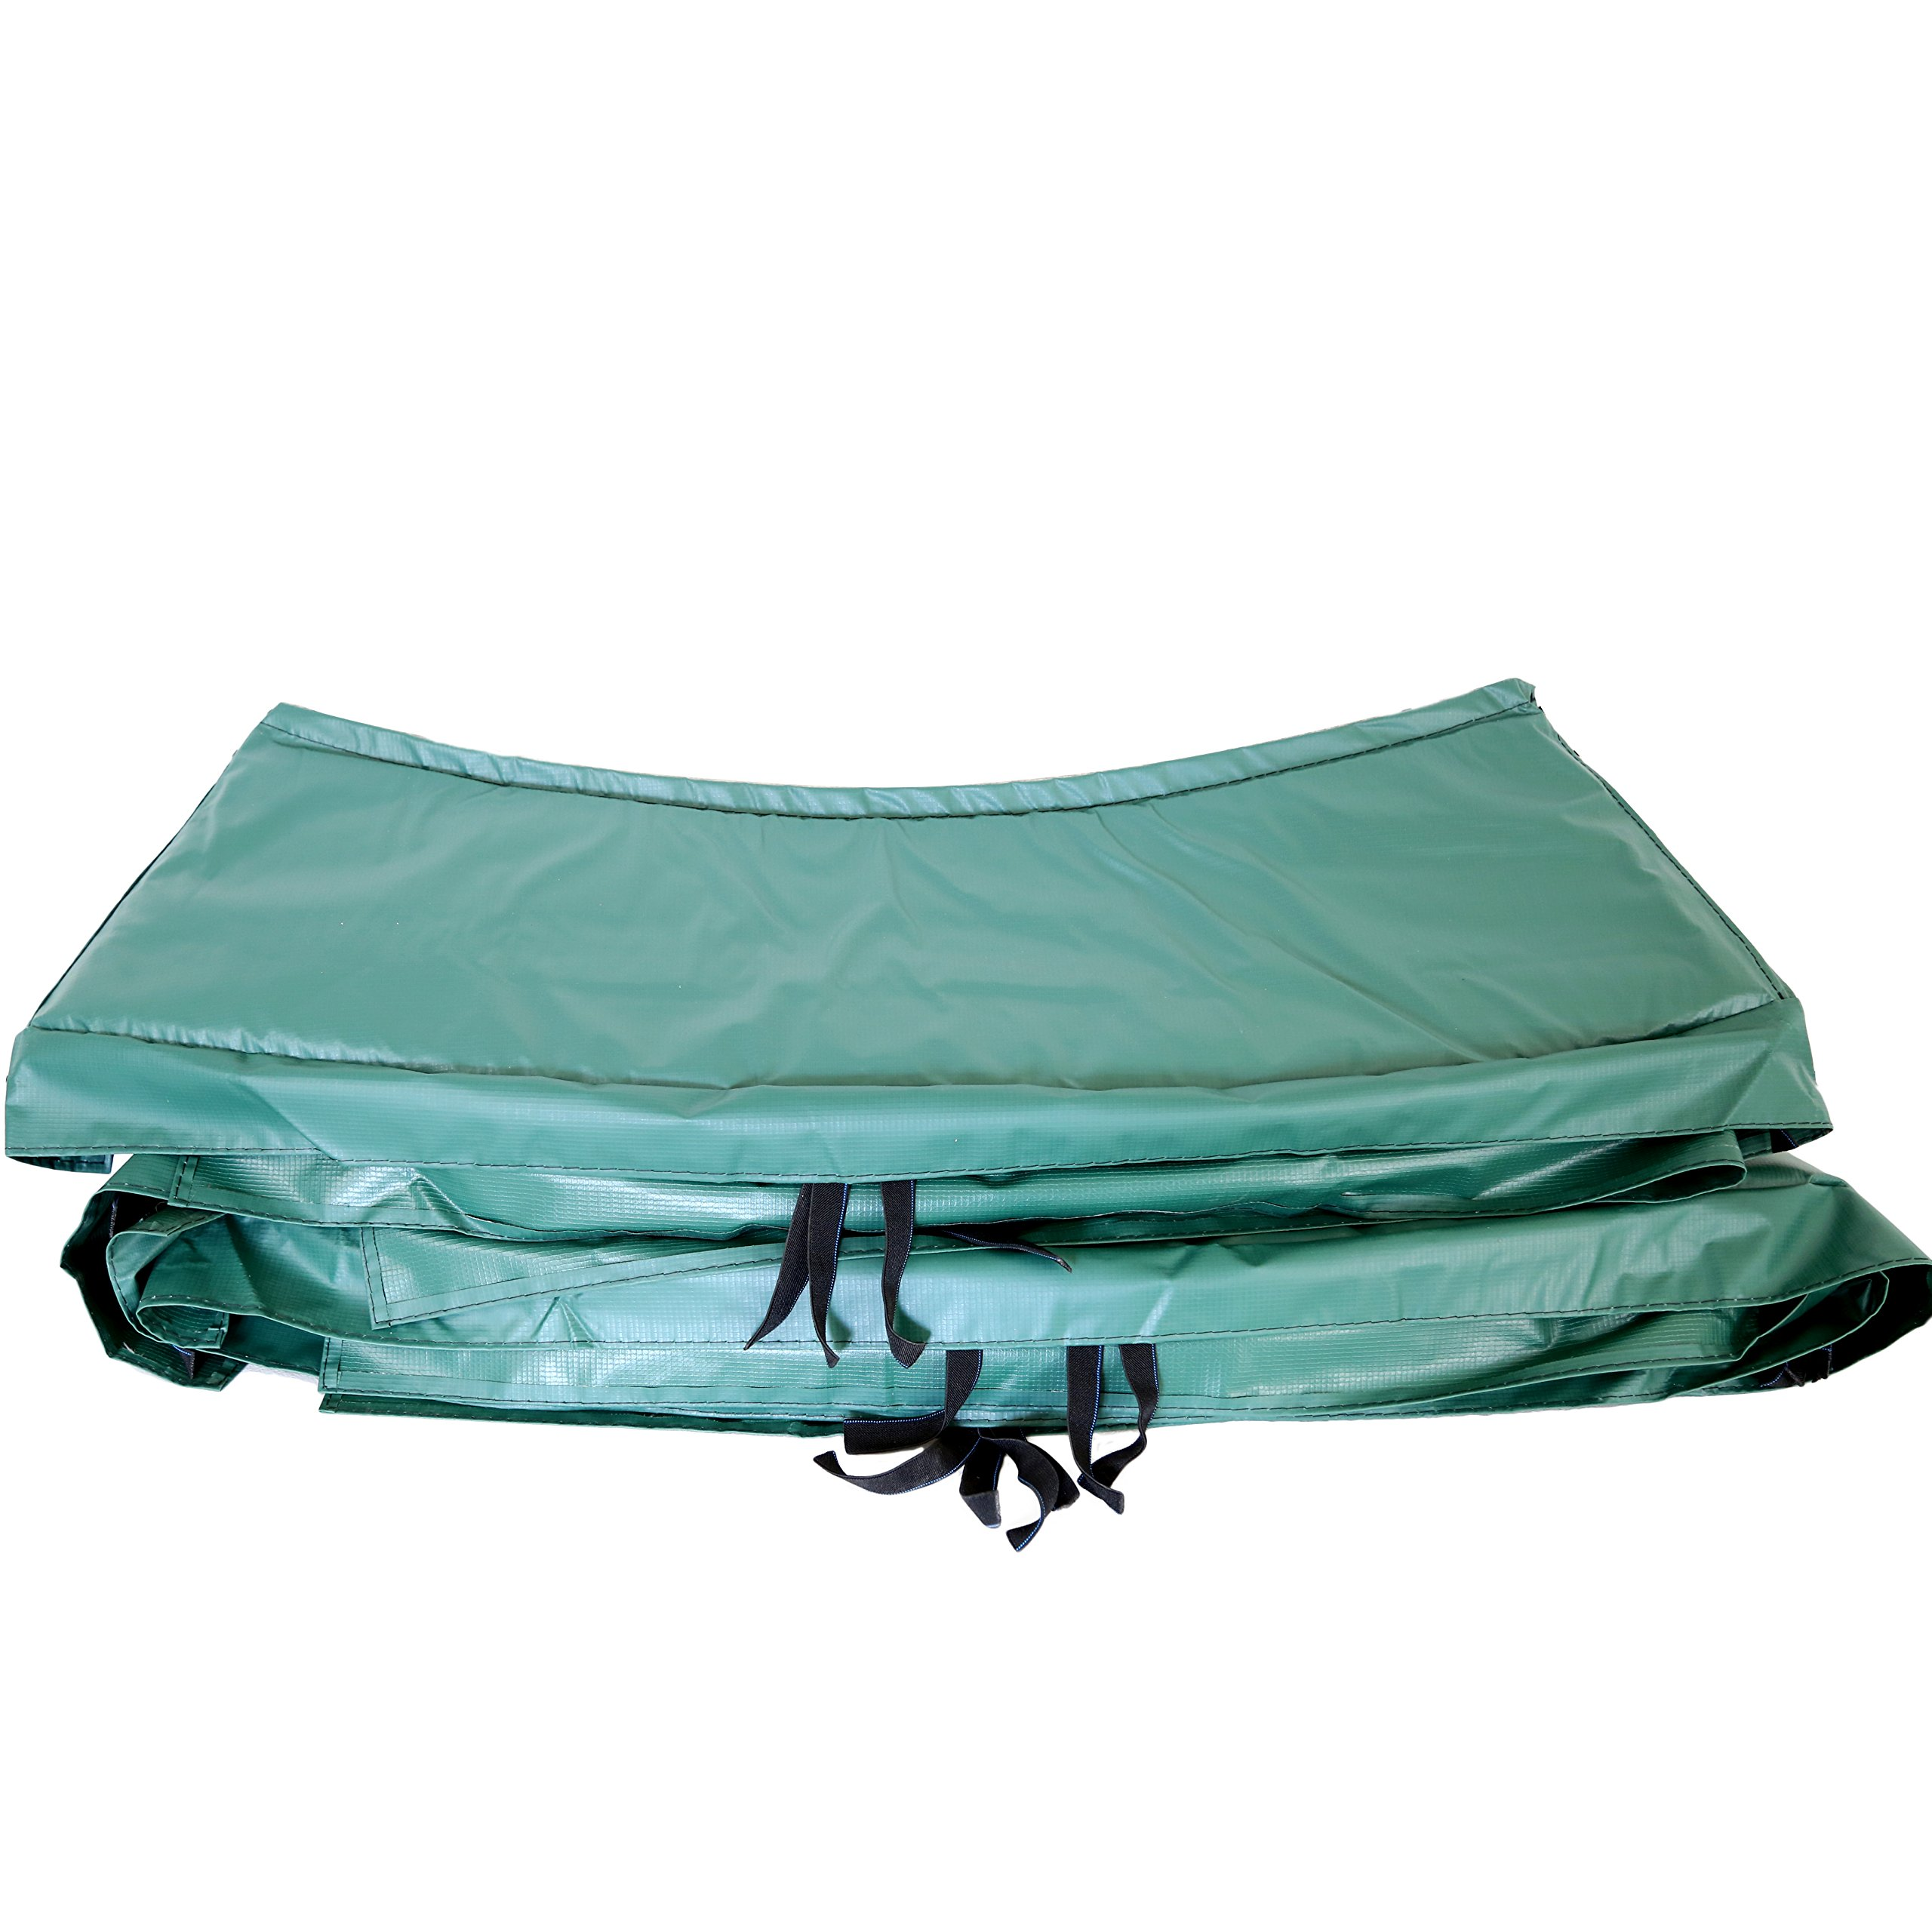 Skywalker Trampolines Round Spring Pad, 12', Green by Skywalker Trampolines